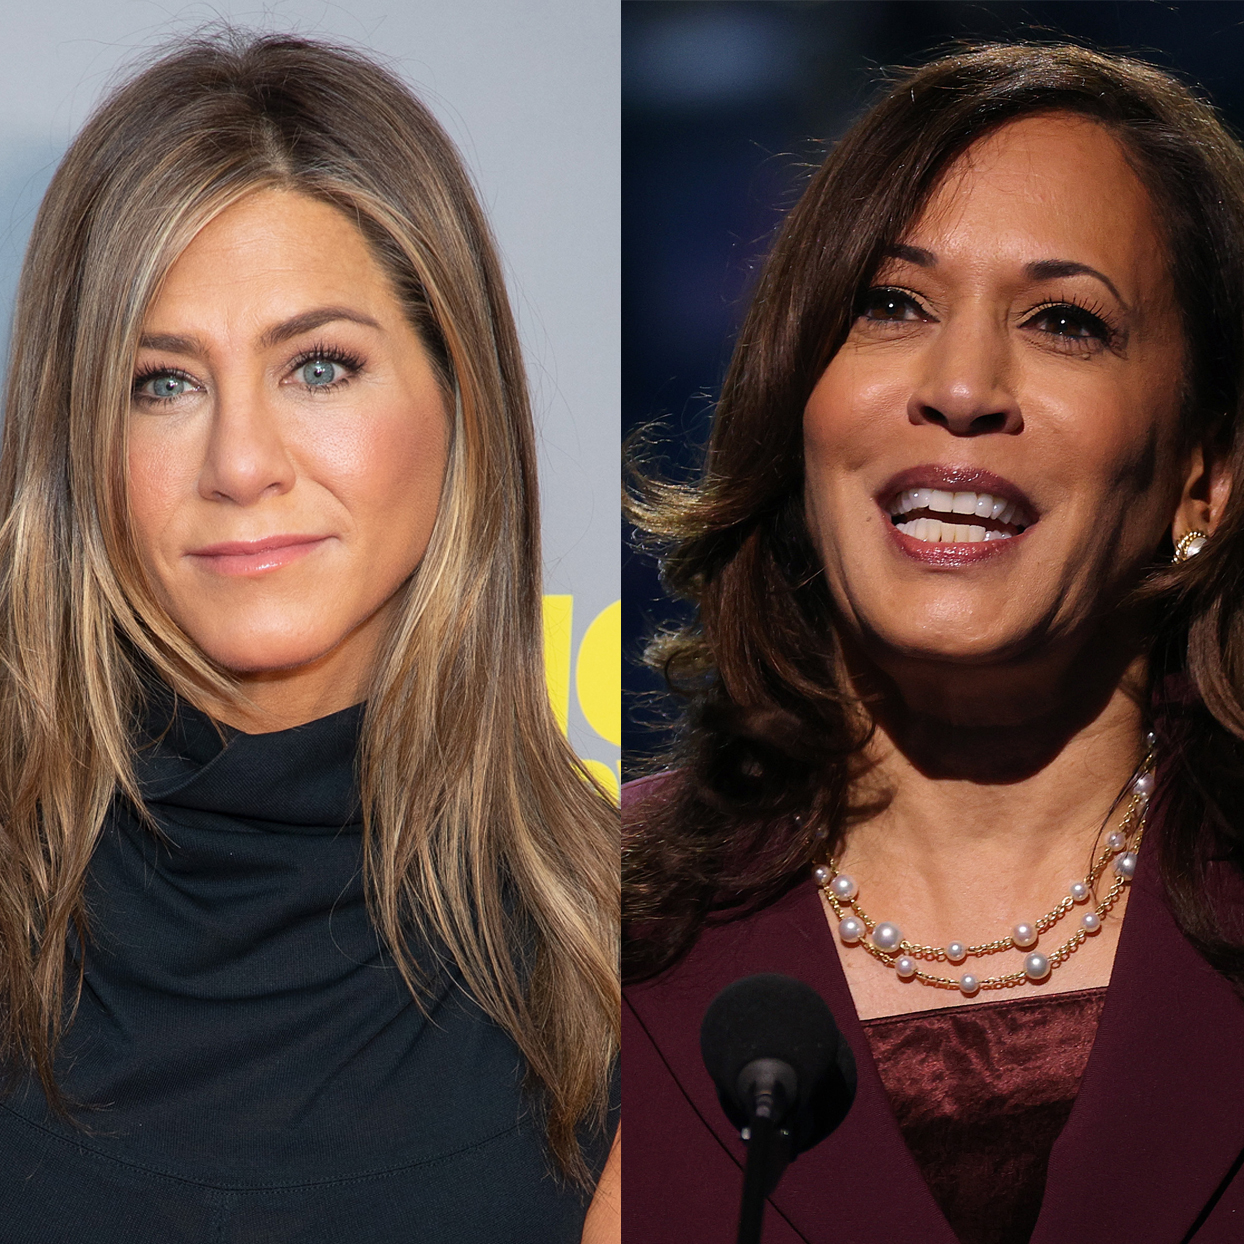 Jennifer Aniston and Kamala Harris